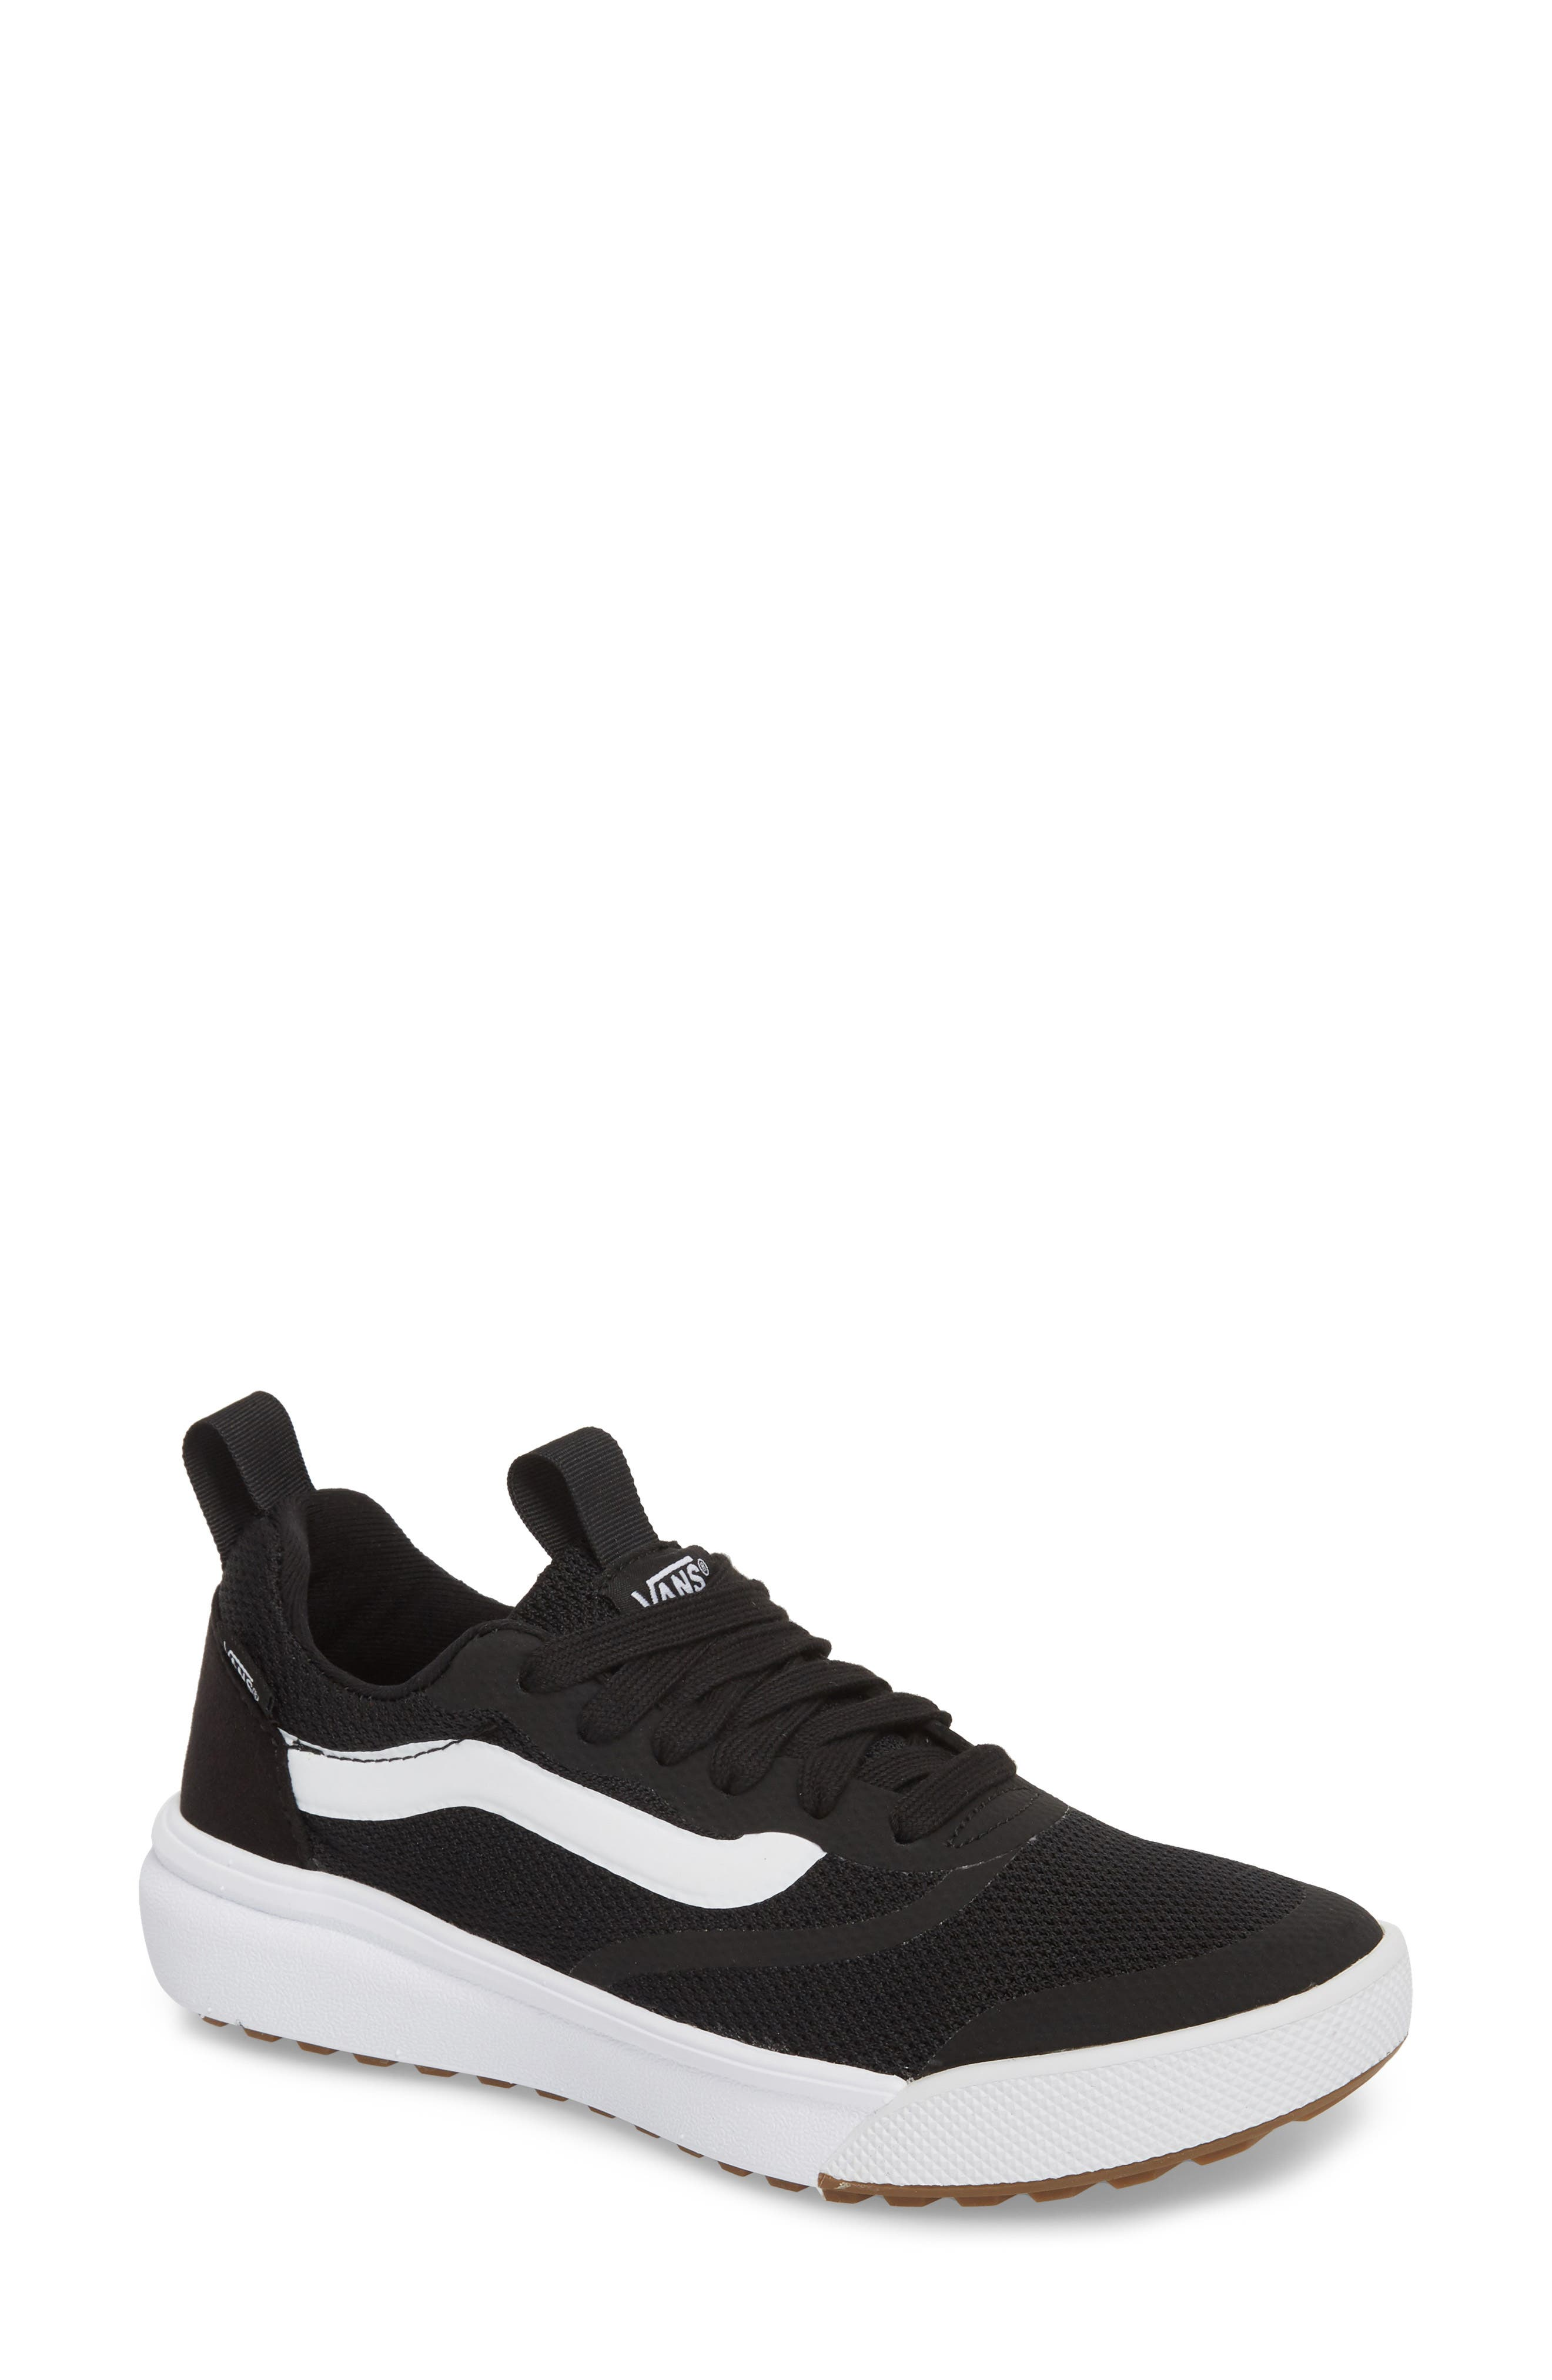 UltraRange Rapidweld Sneaker,                             Main thumbnail 1, color,                             BLACK/ BLACK/ WHITE